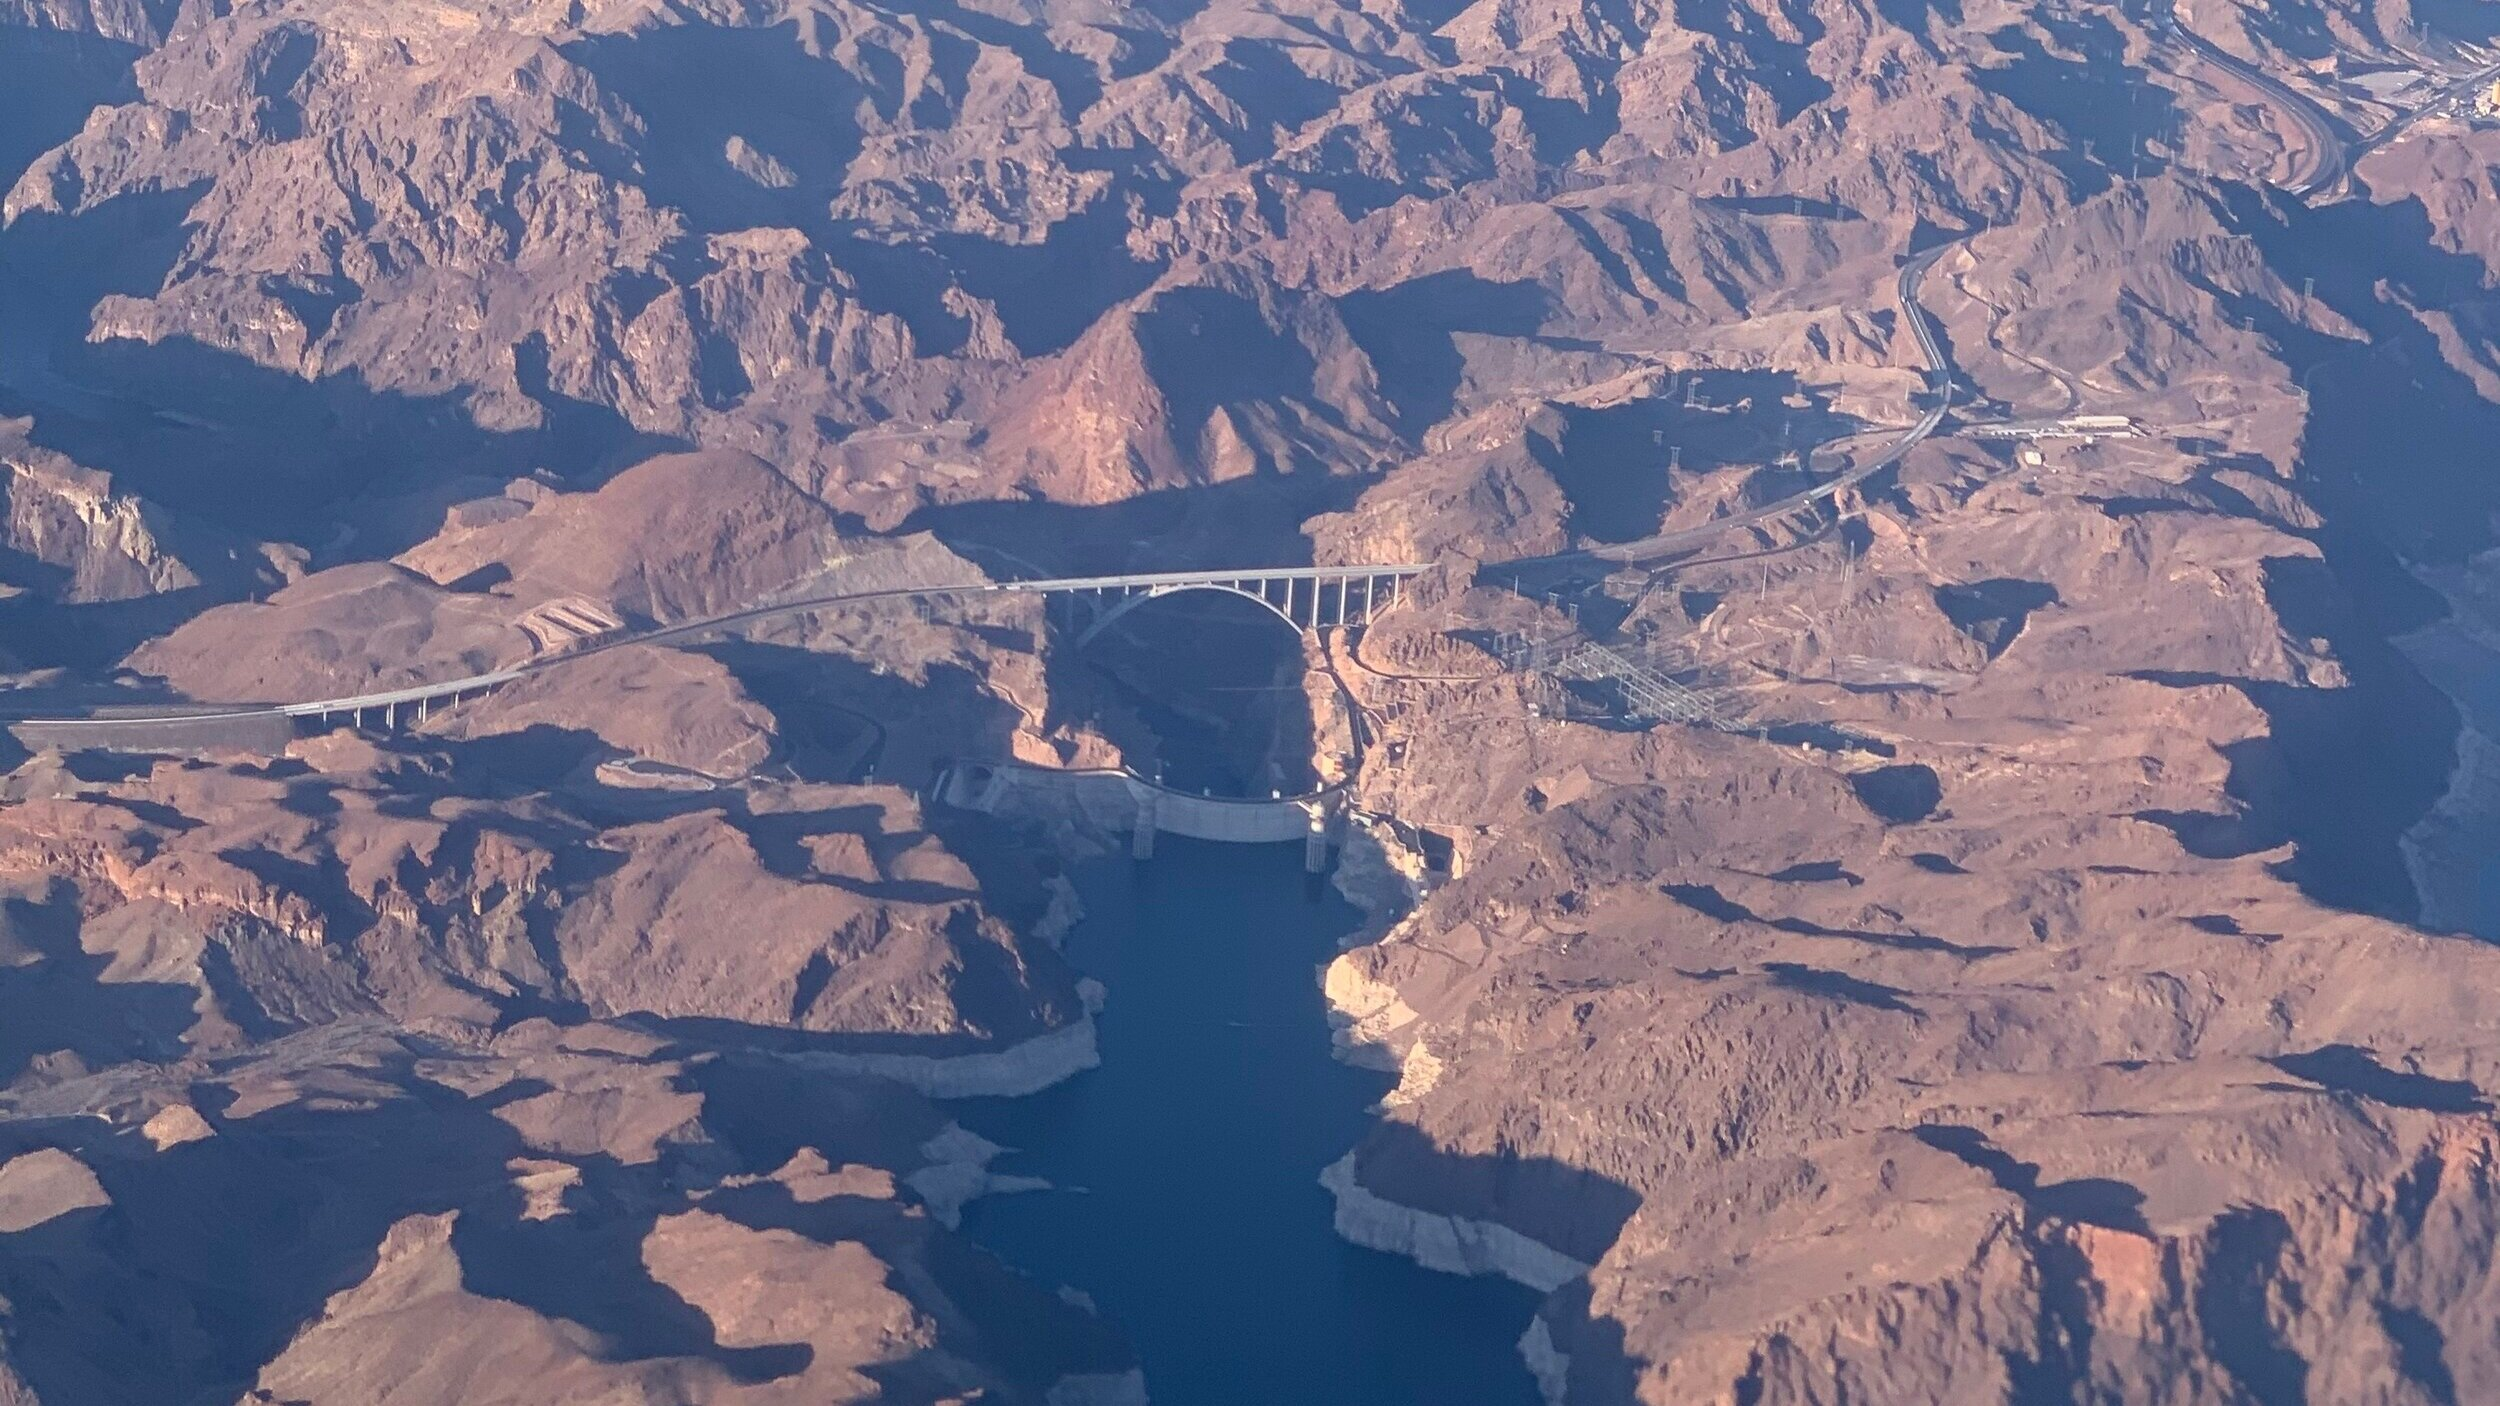 Hoover Dam from the plane